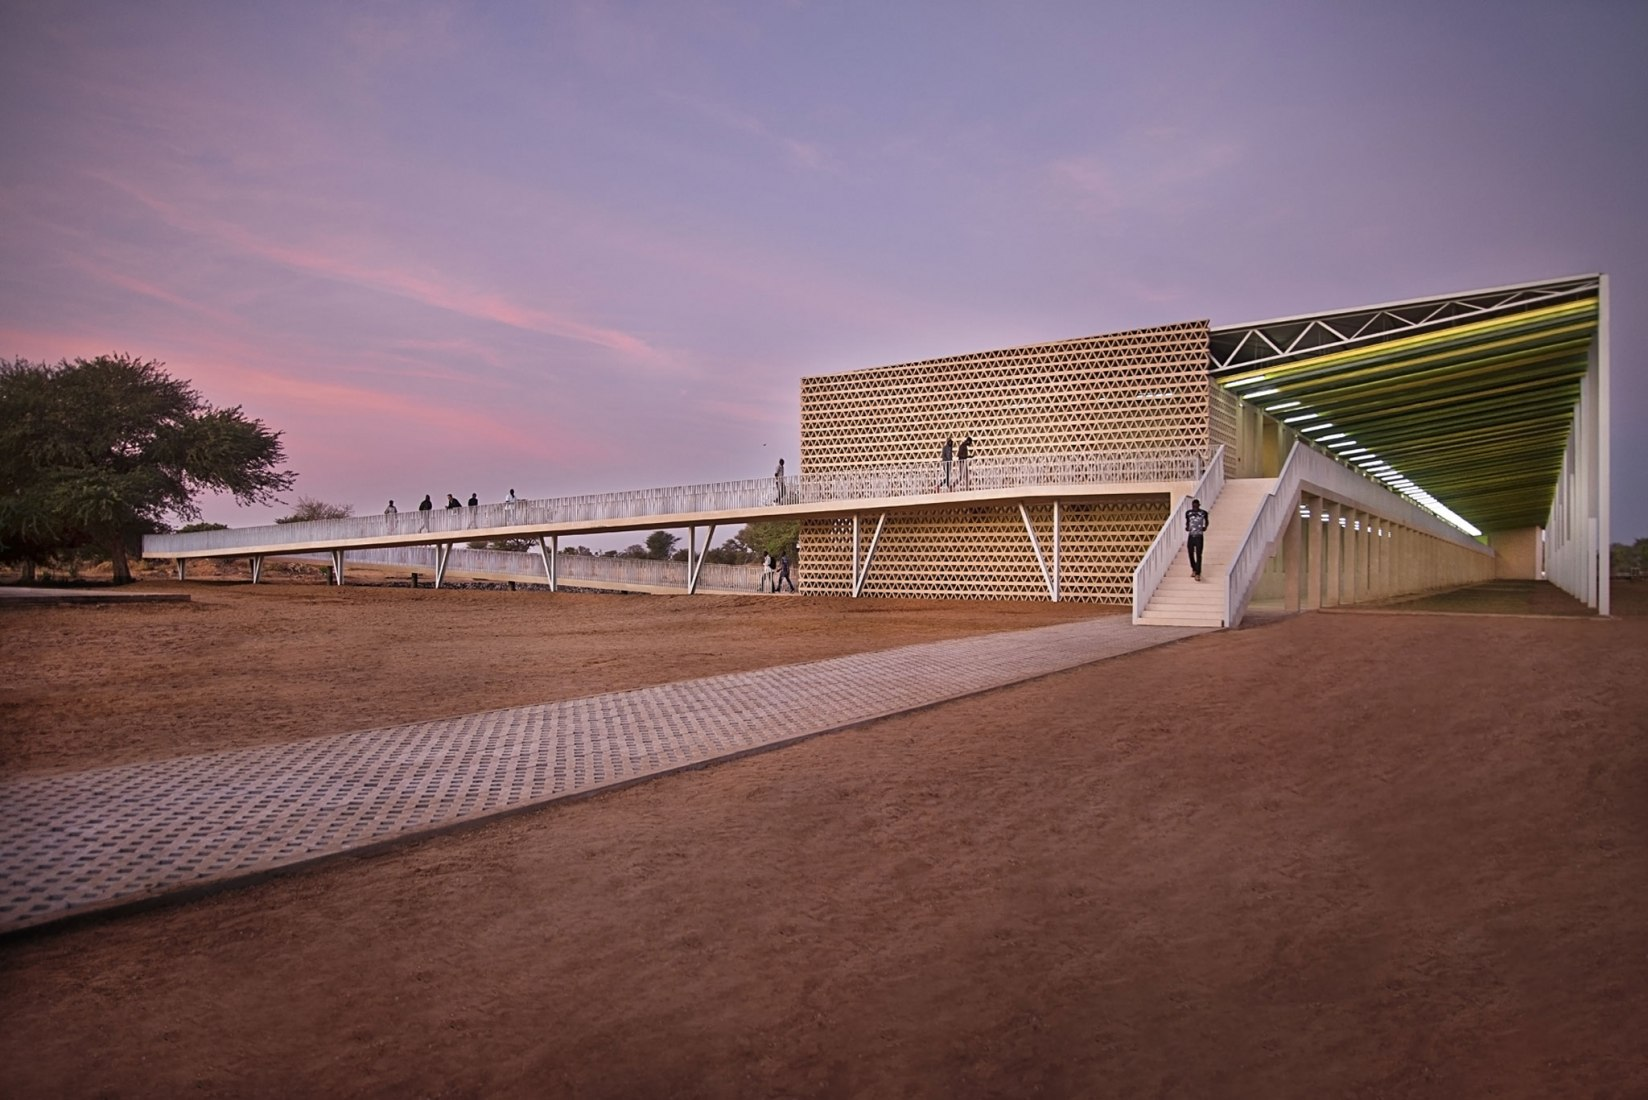 New Alioune Dio University Lecture Building by IDOM. Photograph by Francesco Pinton.